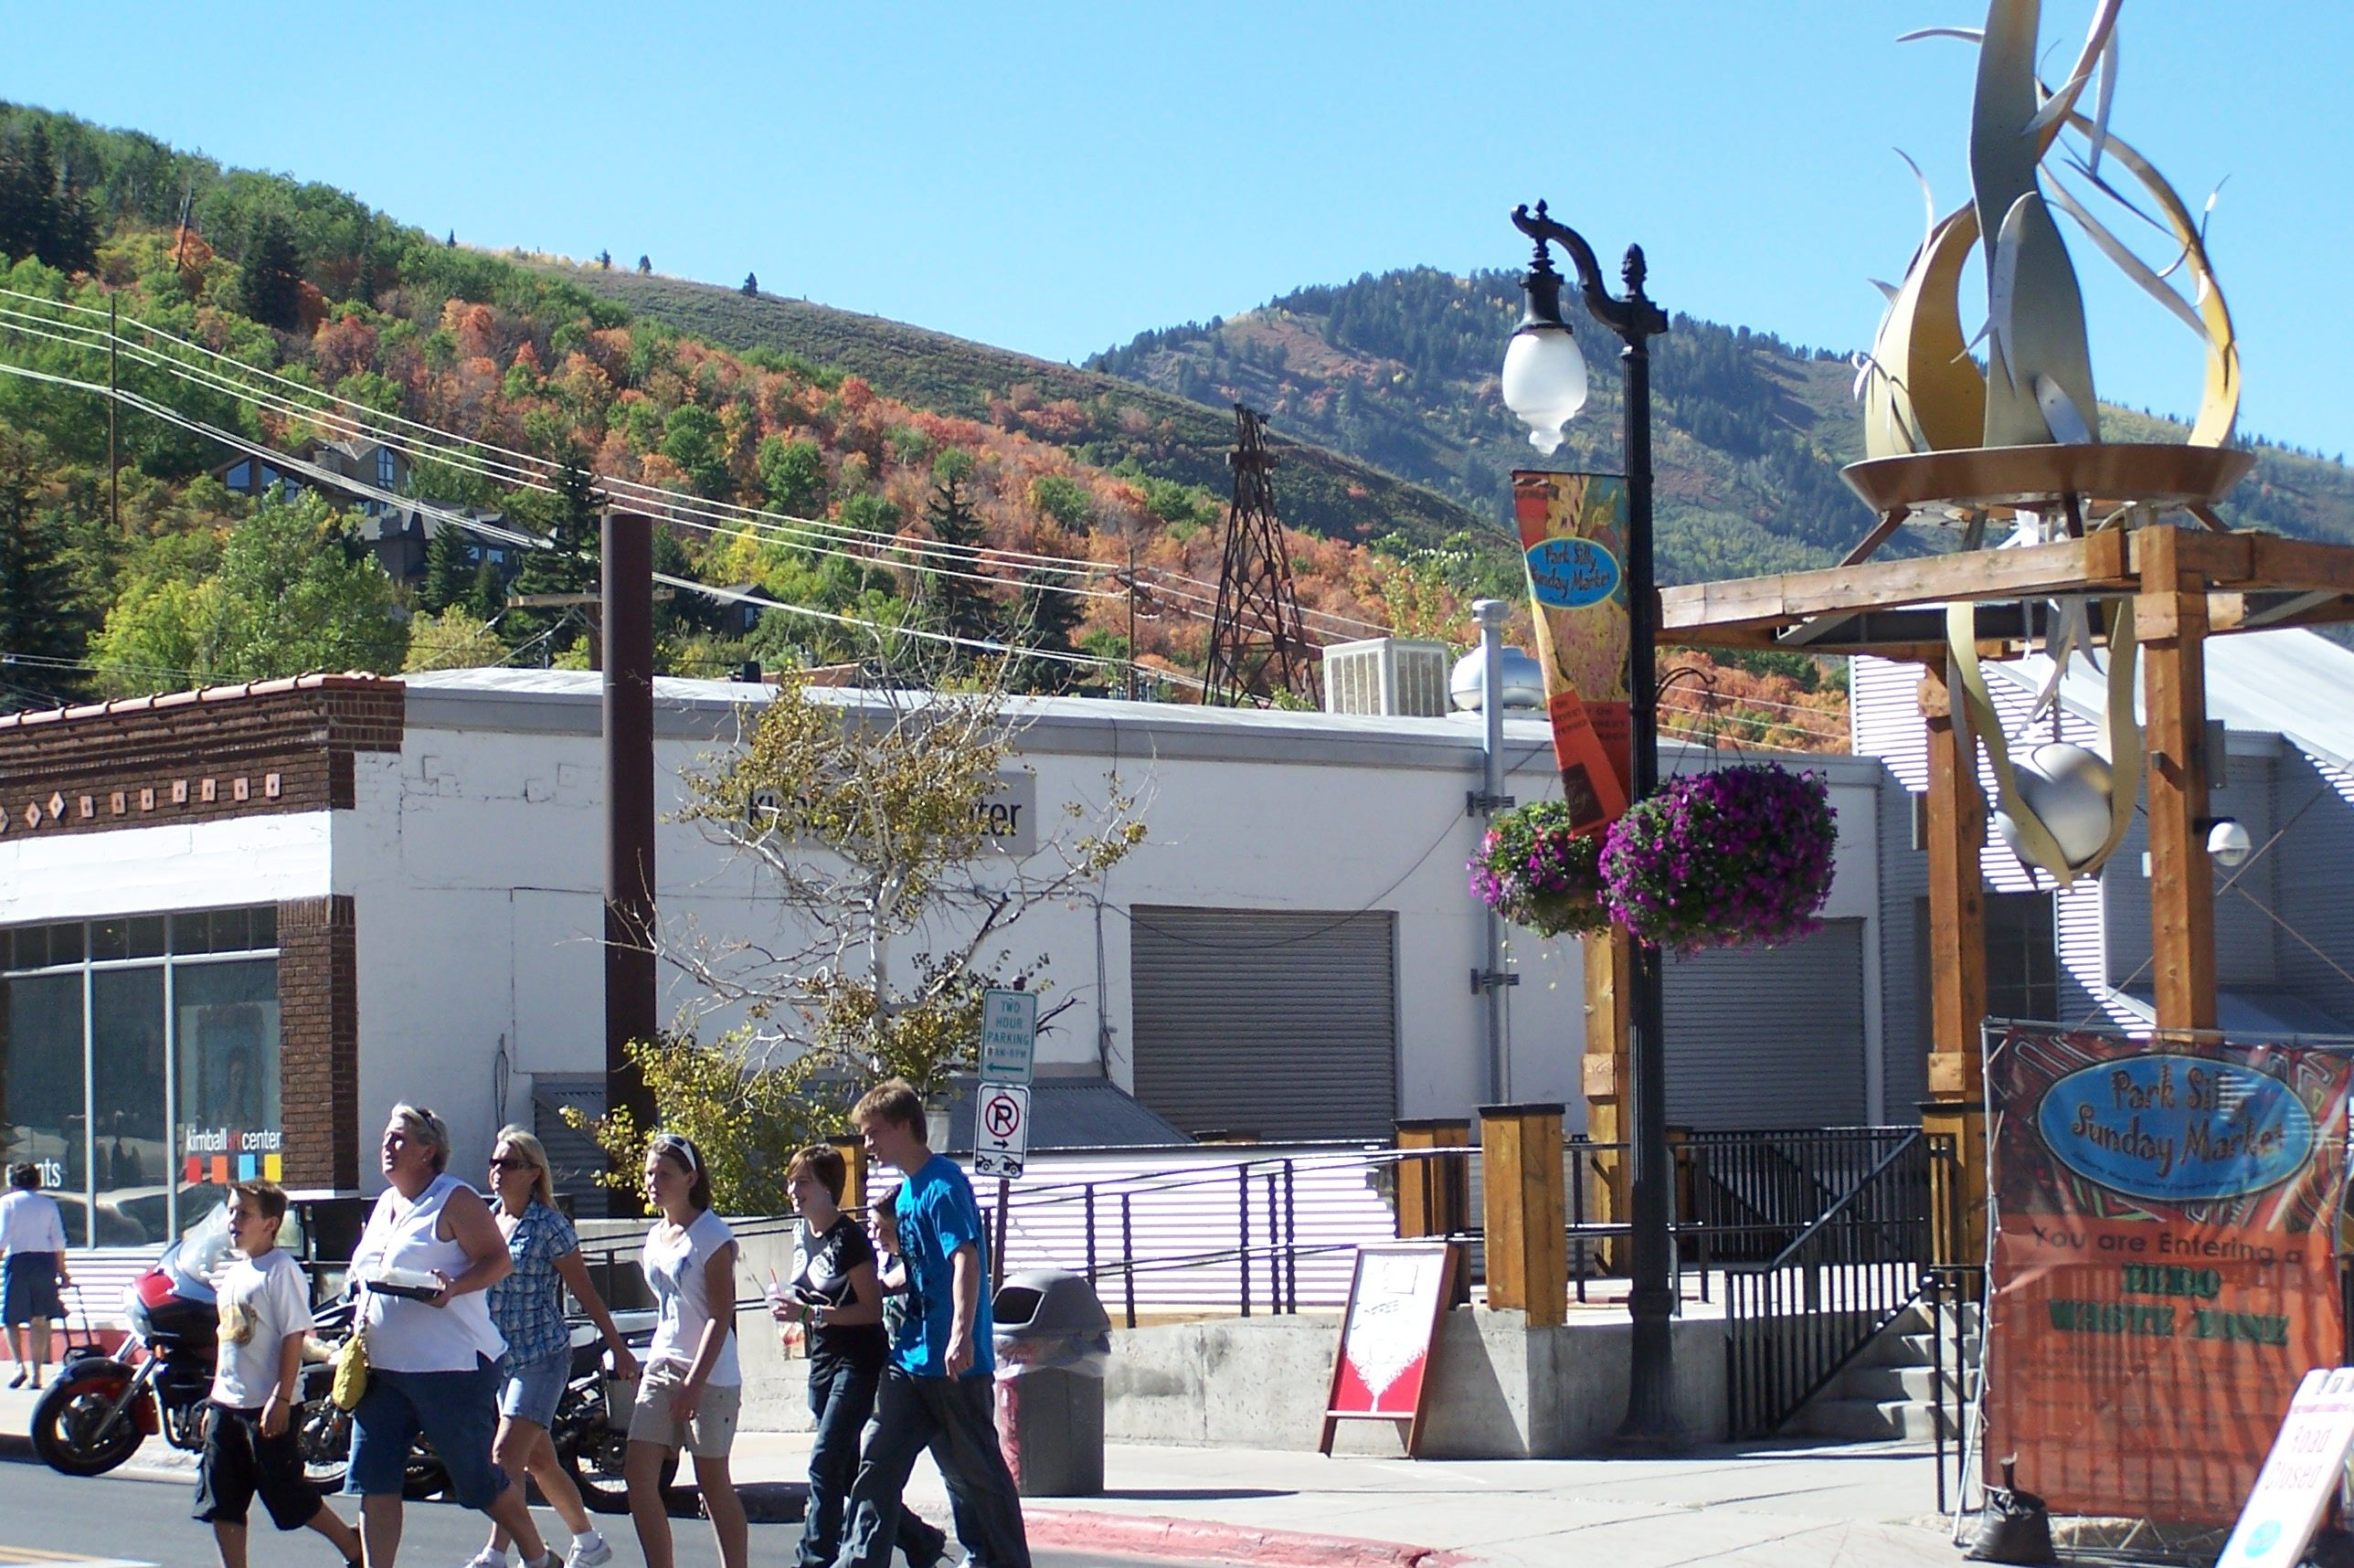 Park City, Utah - a great place to visit year round not just during the film festival